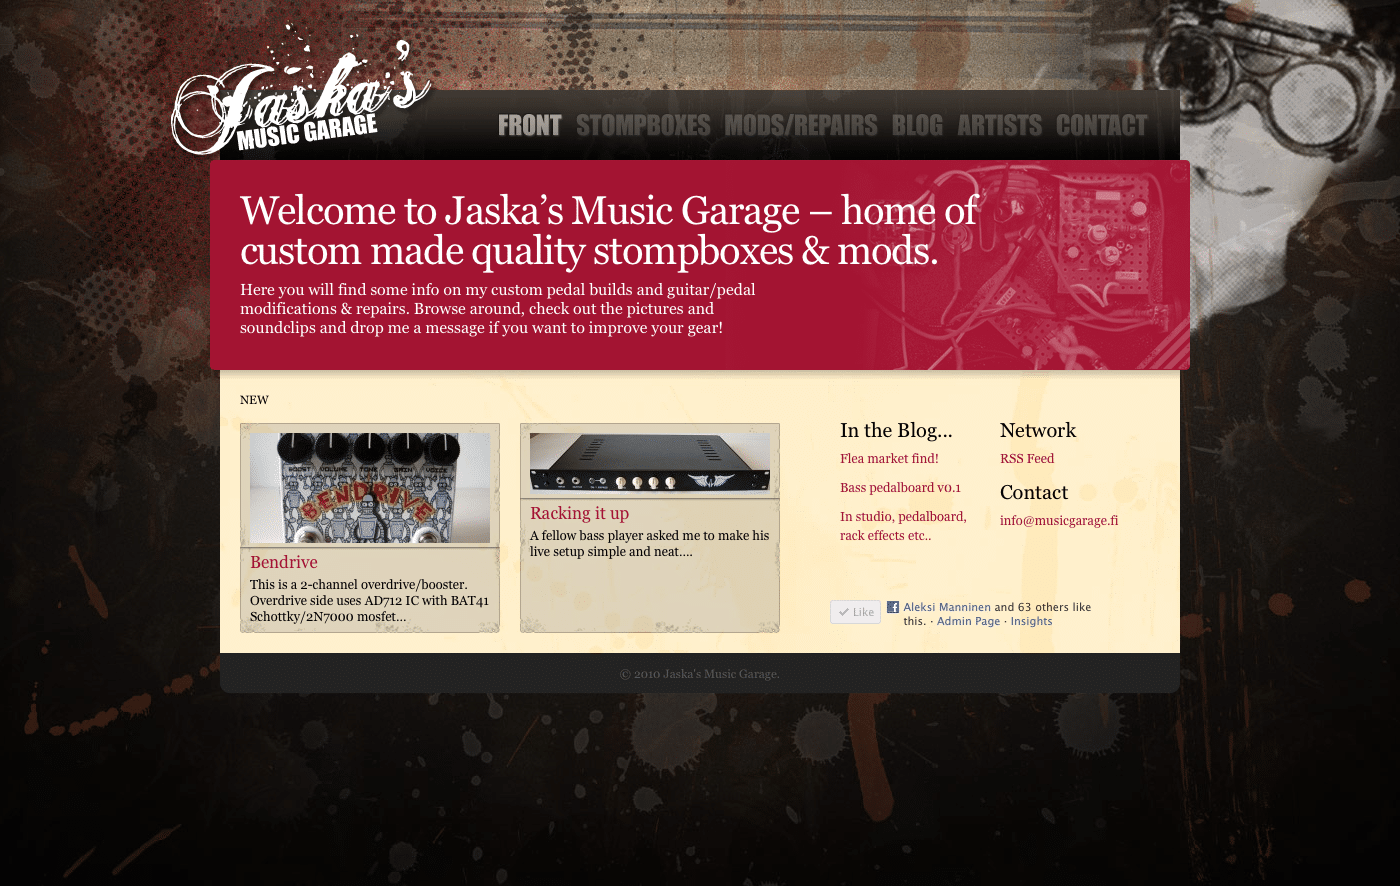 Jaska's Music Garage